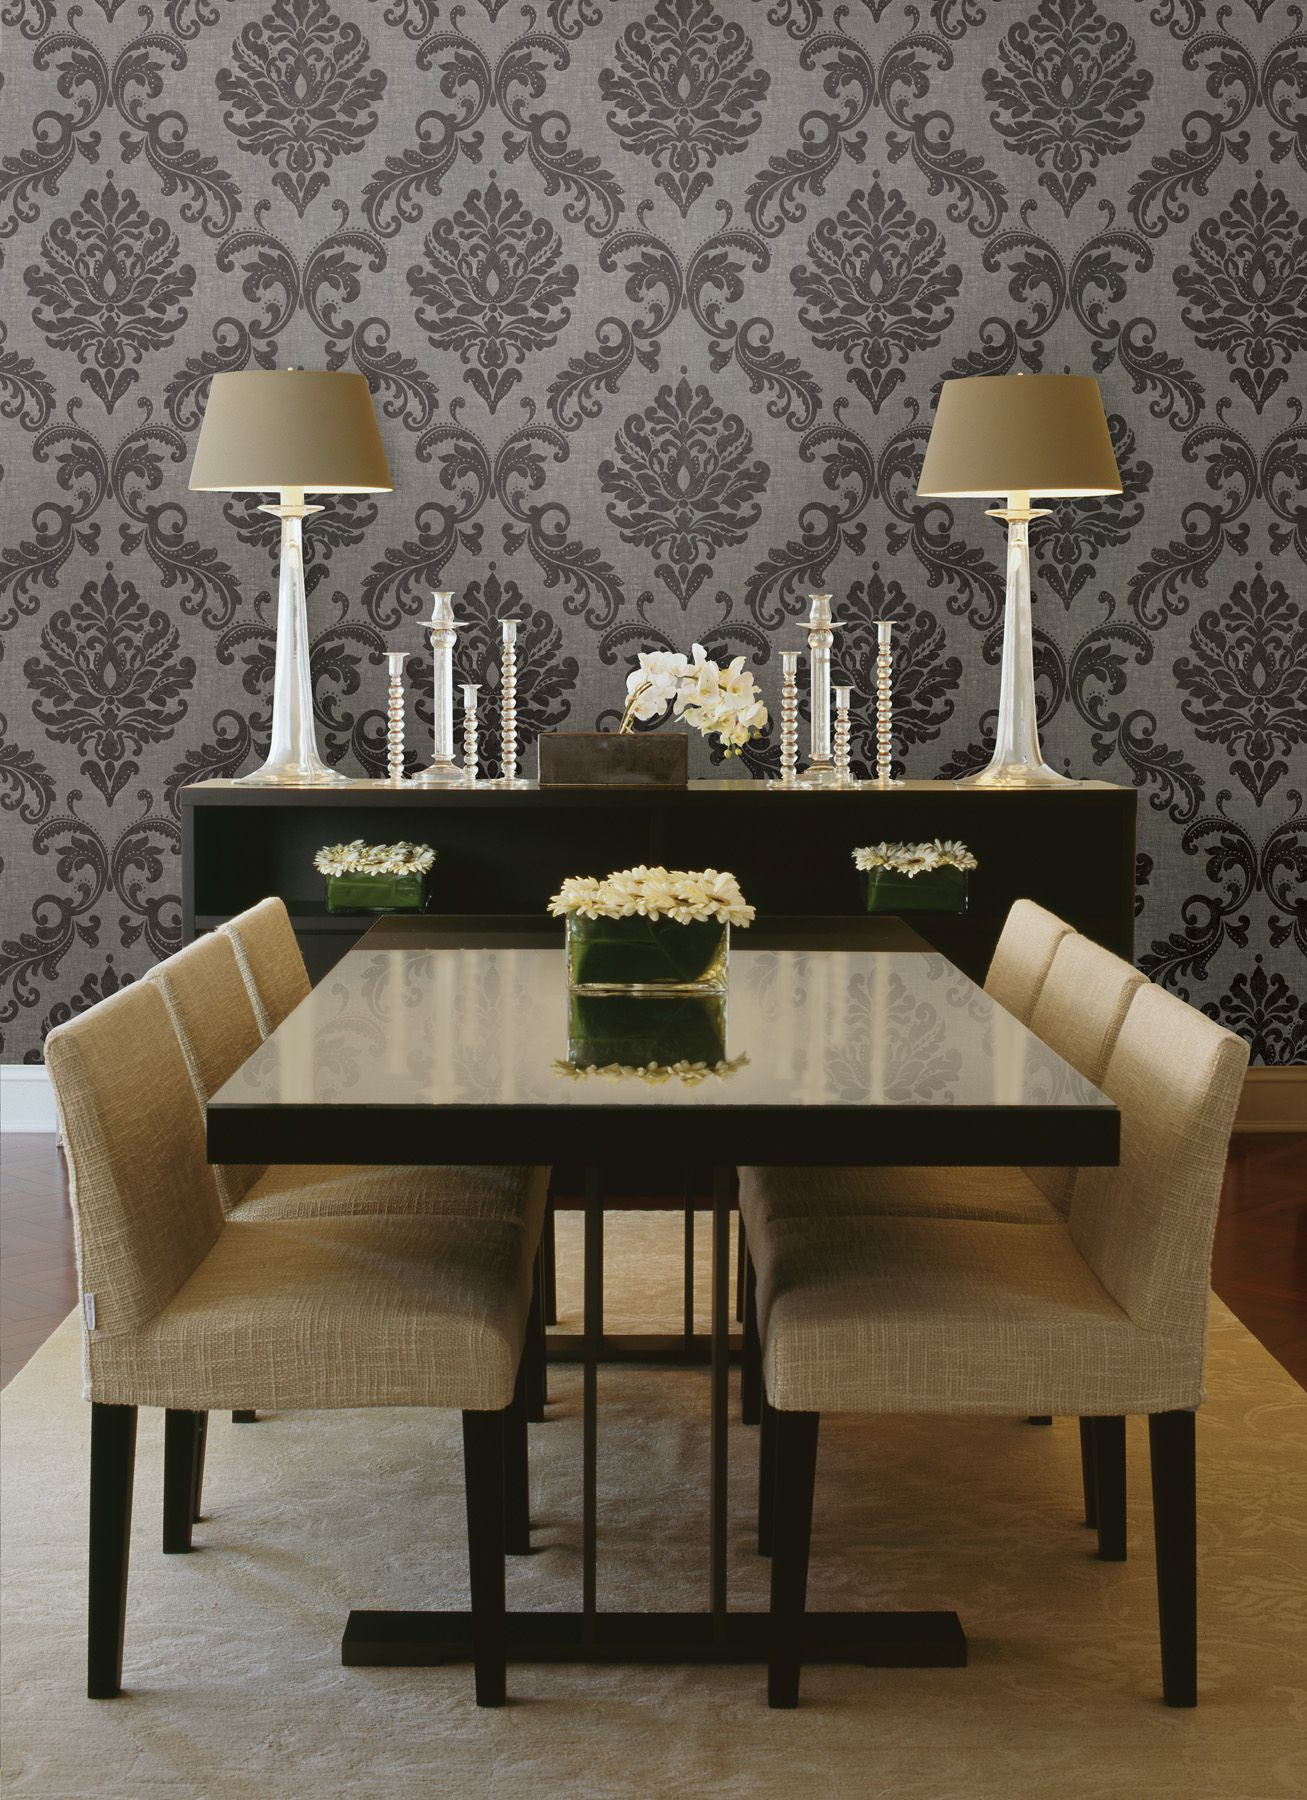 Gorgeous formal dining room decor idea with a damask